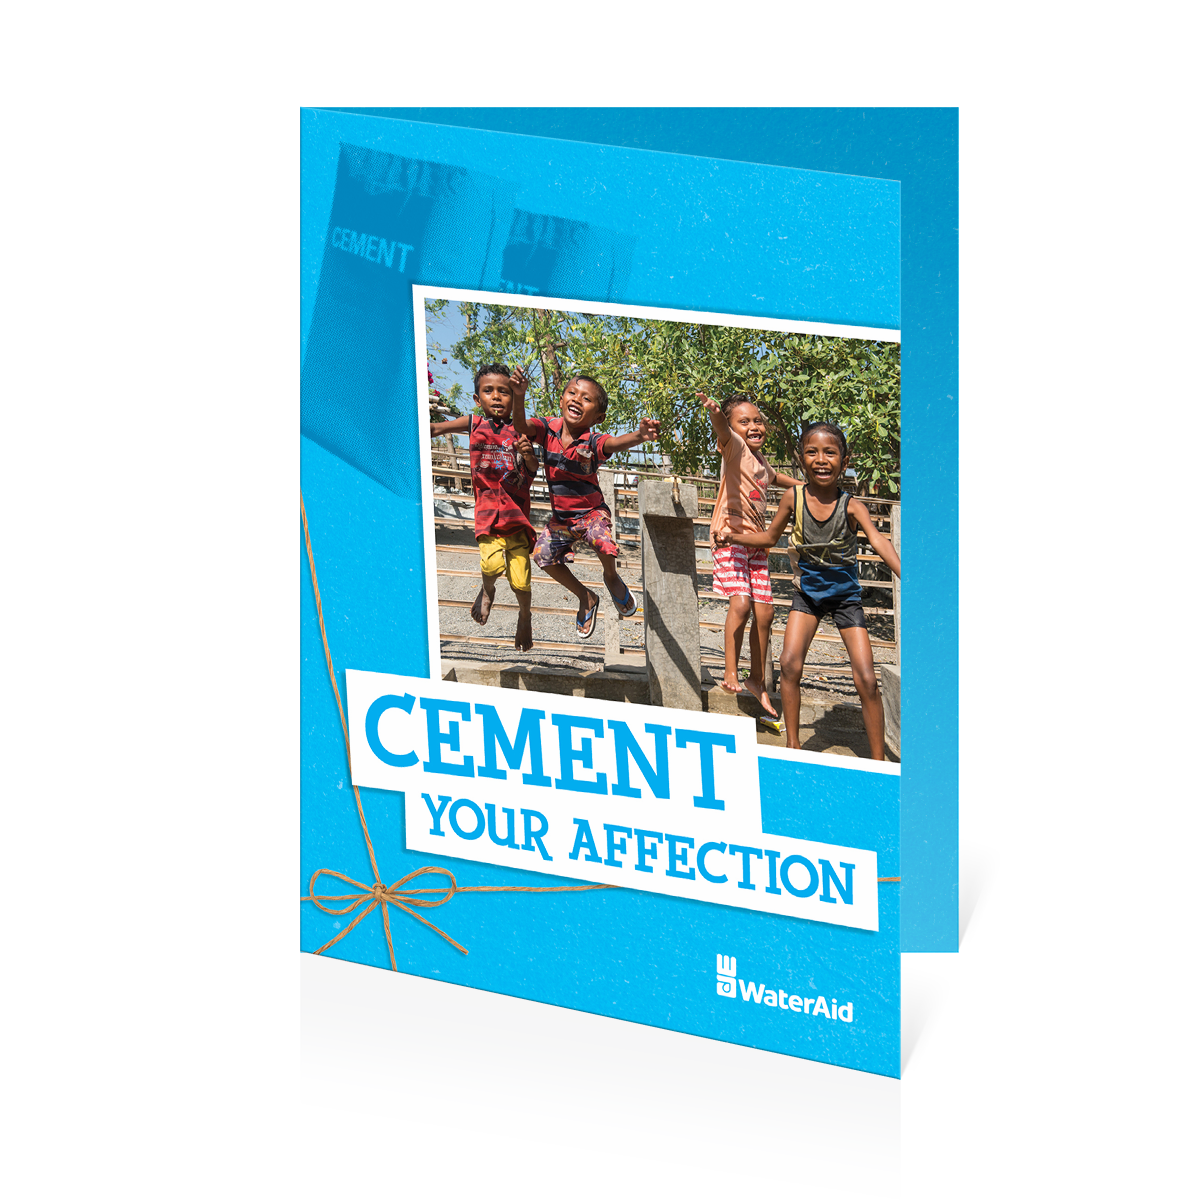 $18 can buy two bags of cement